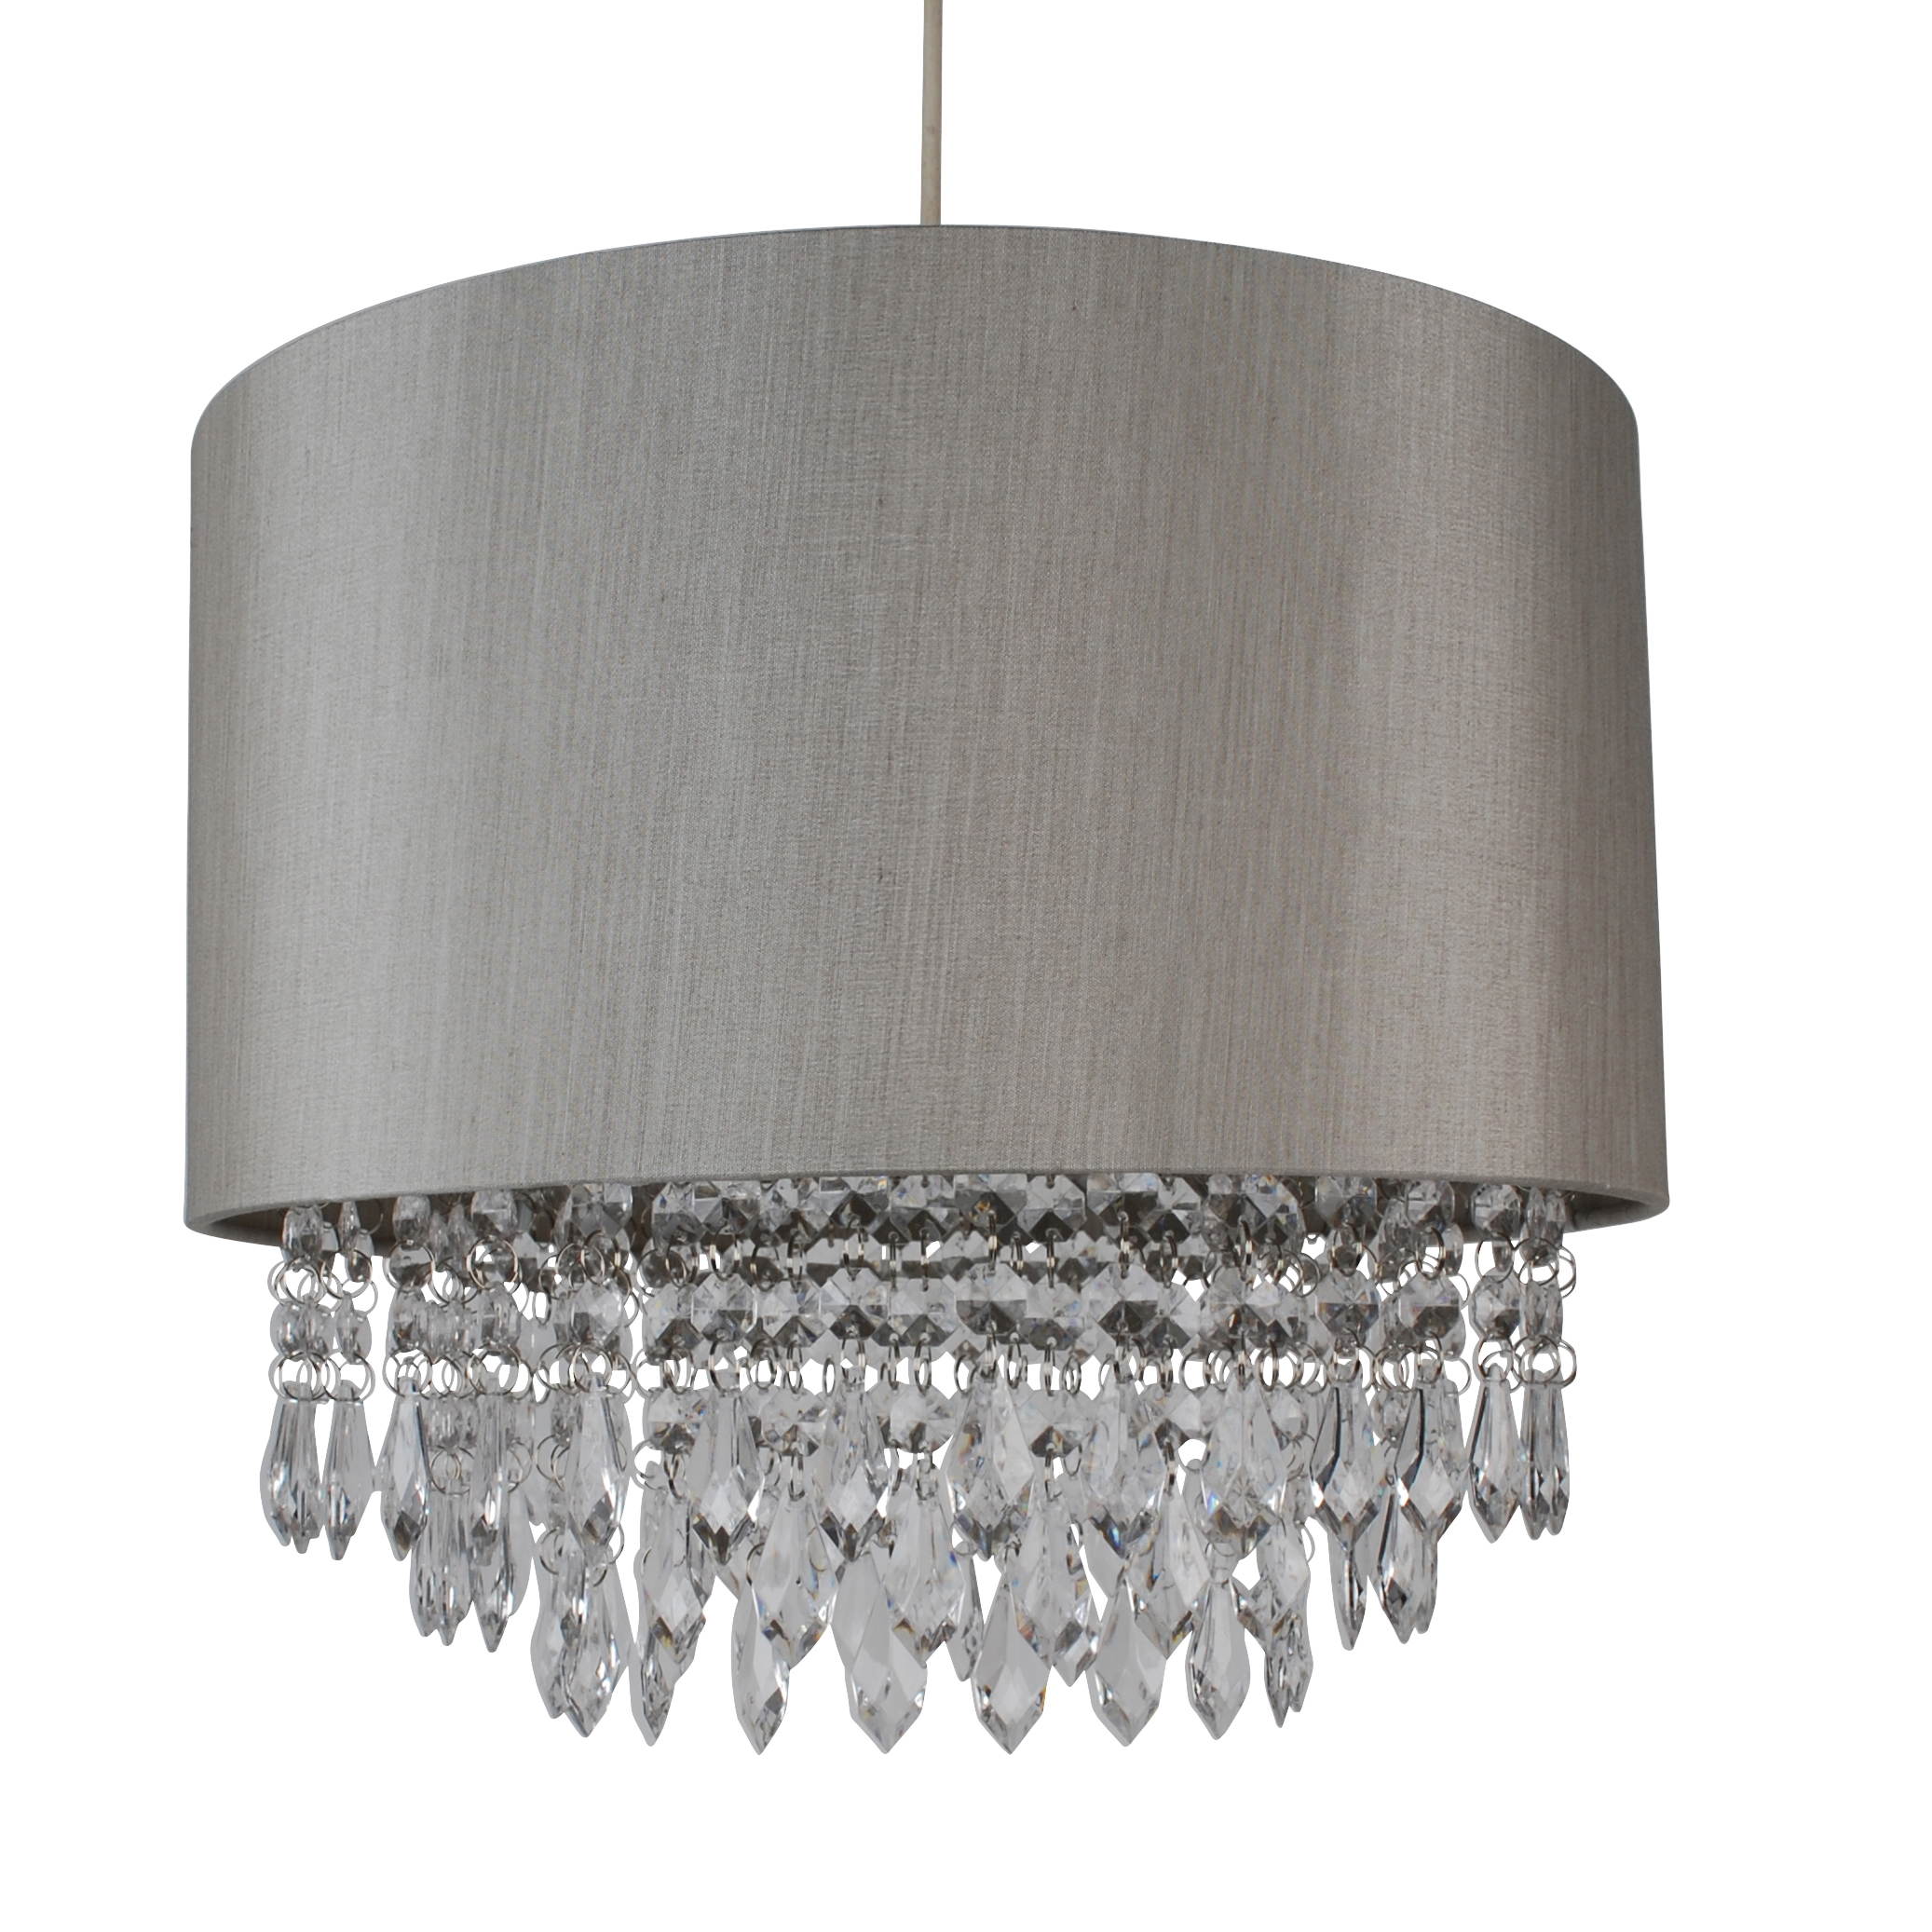 Modern easy fit drum shade silver fabric ceiling pendant light shade modern easy fit drum shade silver fabric ceiling pendant light shade chandelier aloadofball Images